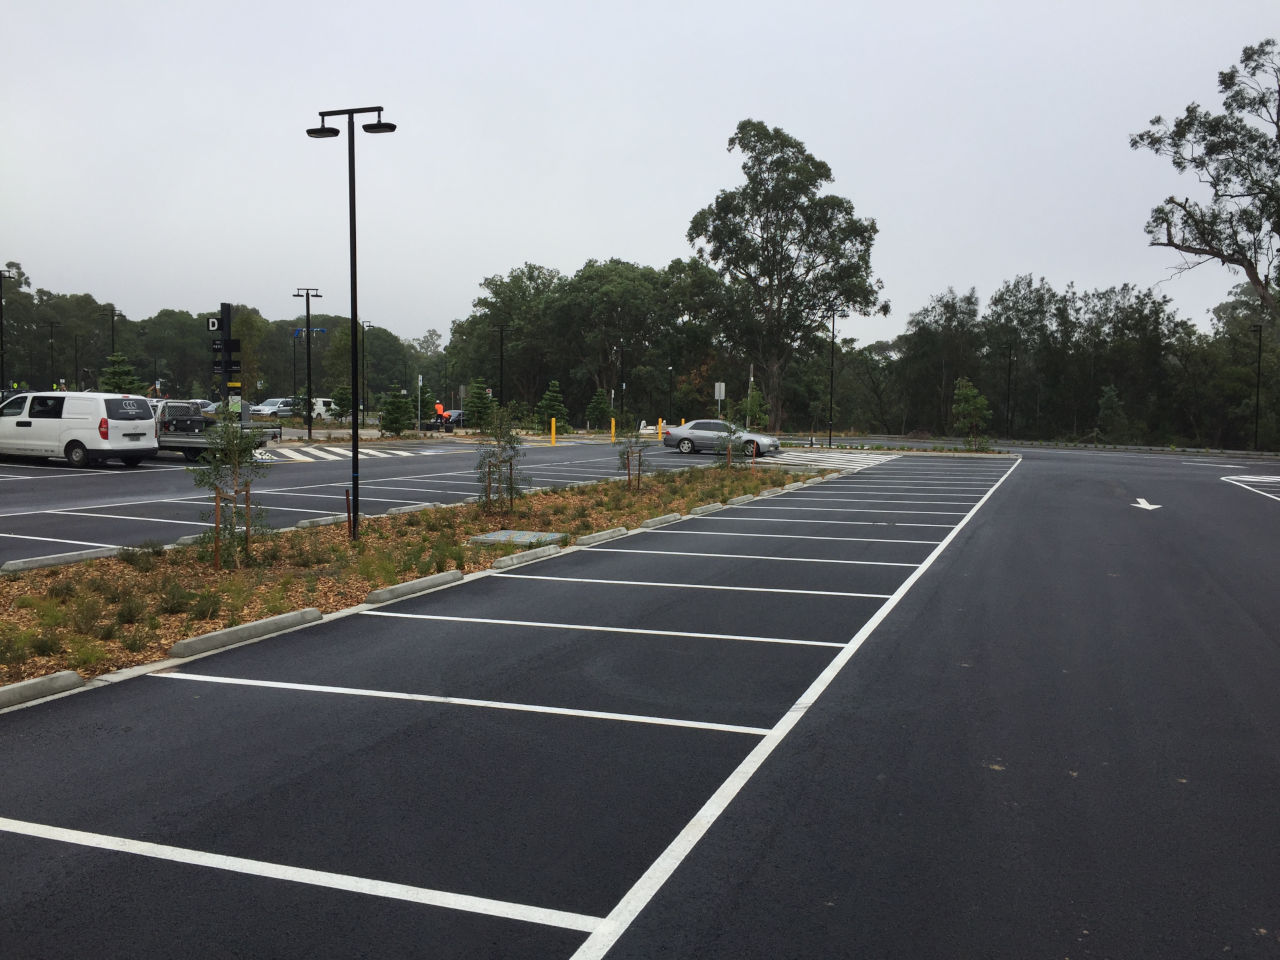 Northern Car Park at Western Sydney Stadium